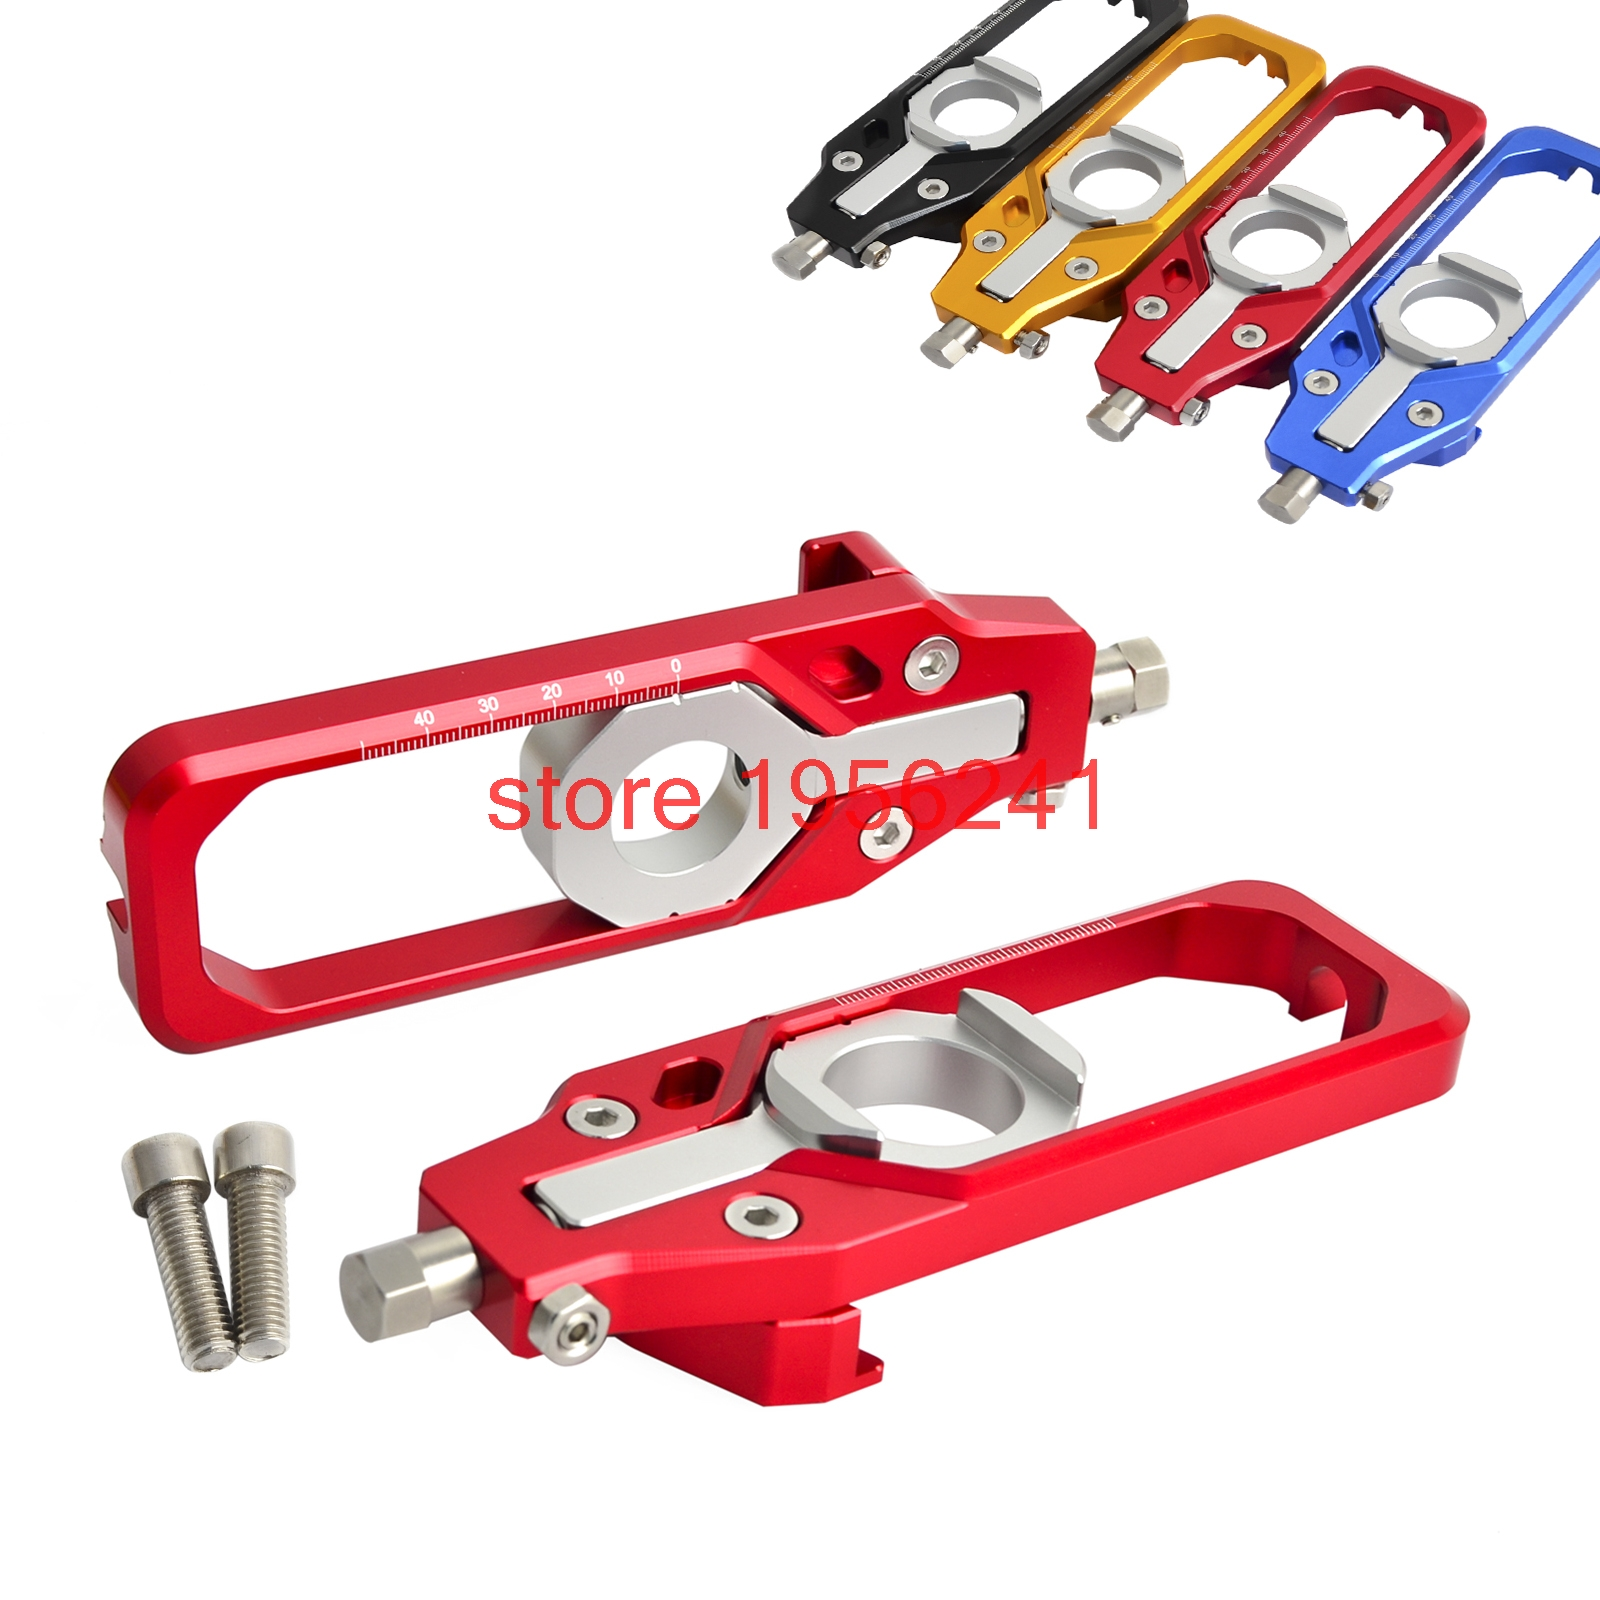 Motorcycle Chain Adjuster Tensioners For BMW HP4 2012 2013 2014 S1000R 2014-2017 S1000RR 2010-2017 new motorcycle cnc billet rear axle spindle chain adjuster blocks for bmw hp4 2012 2014 s1000r 2013 2015 s1000rr 09